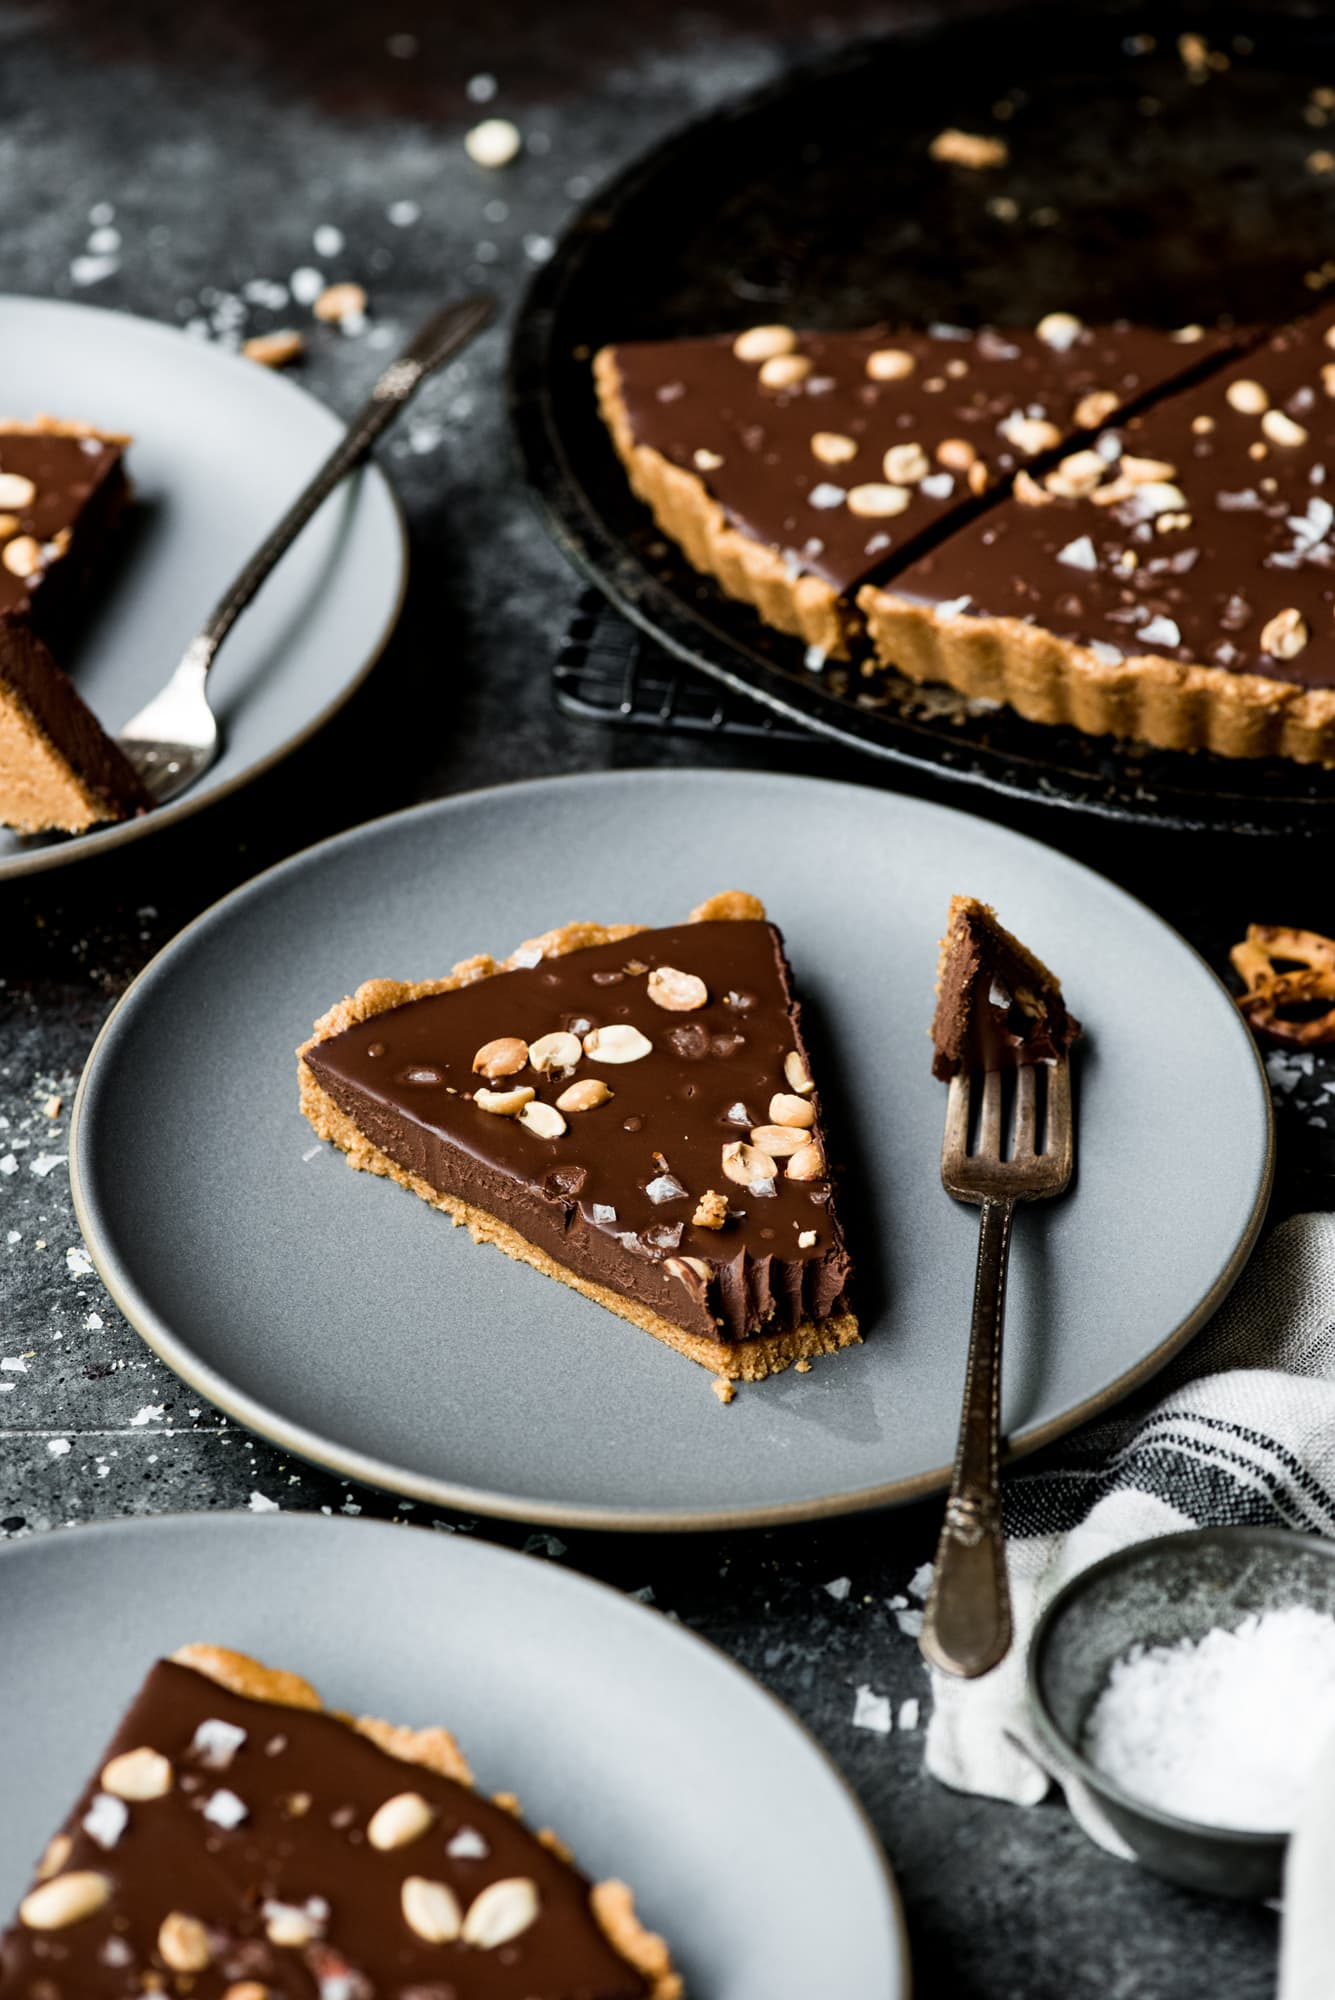 Peanut butter pretzel chocolate tart on a dark plate with fork